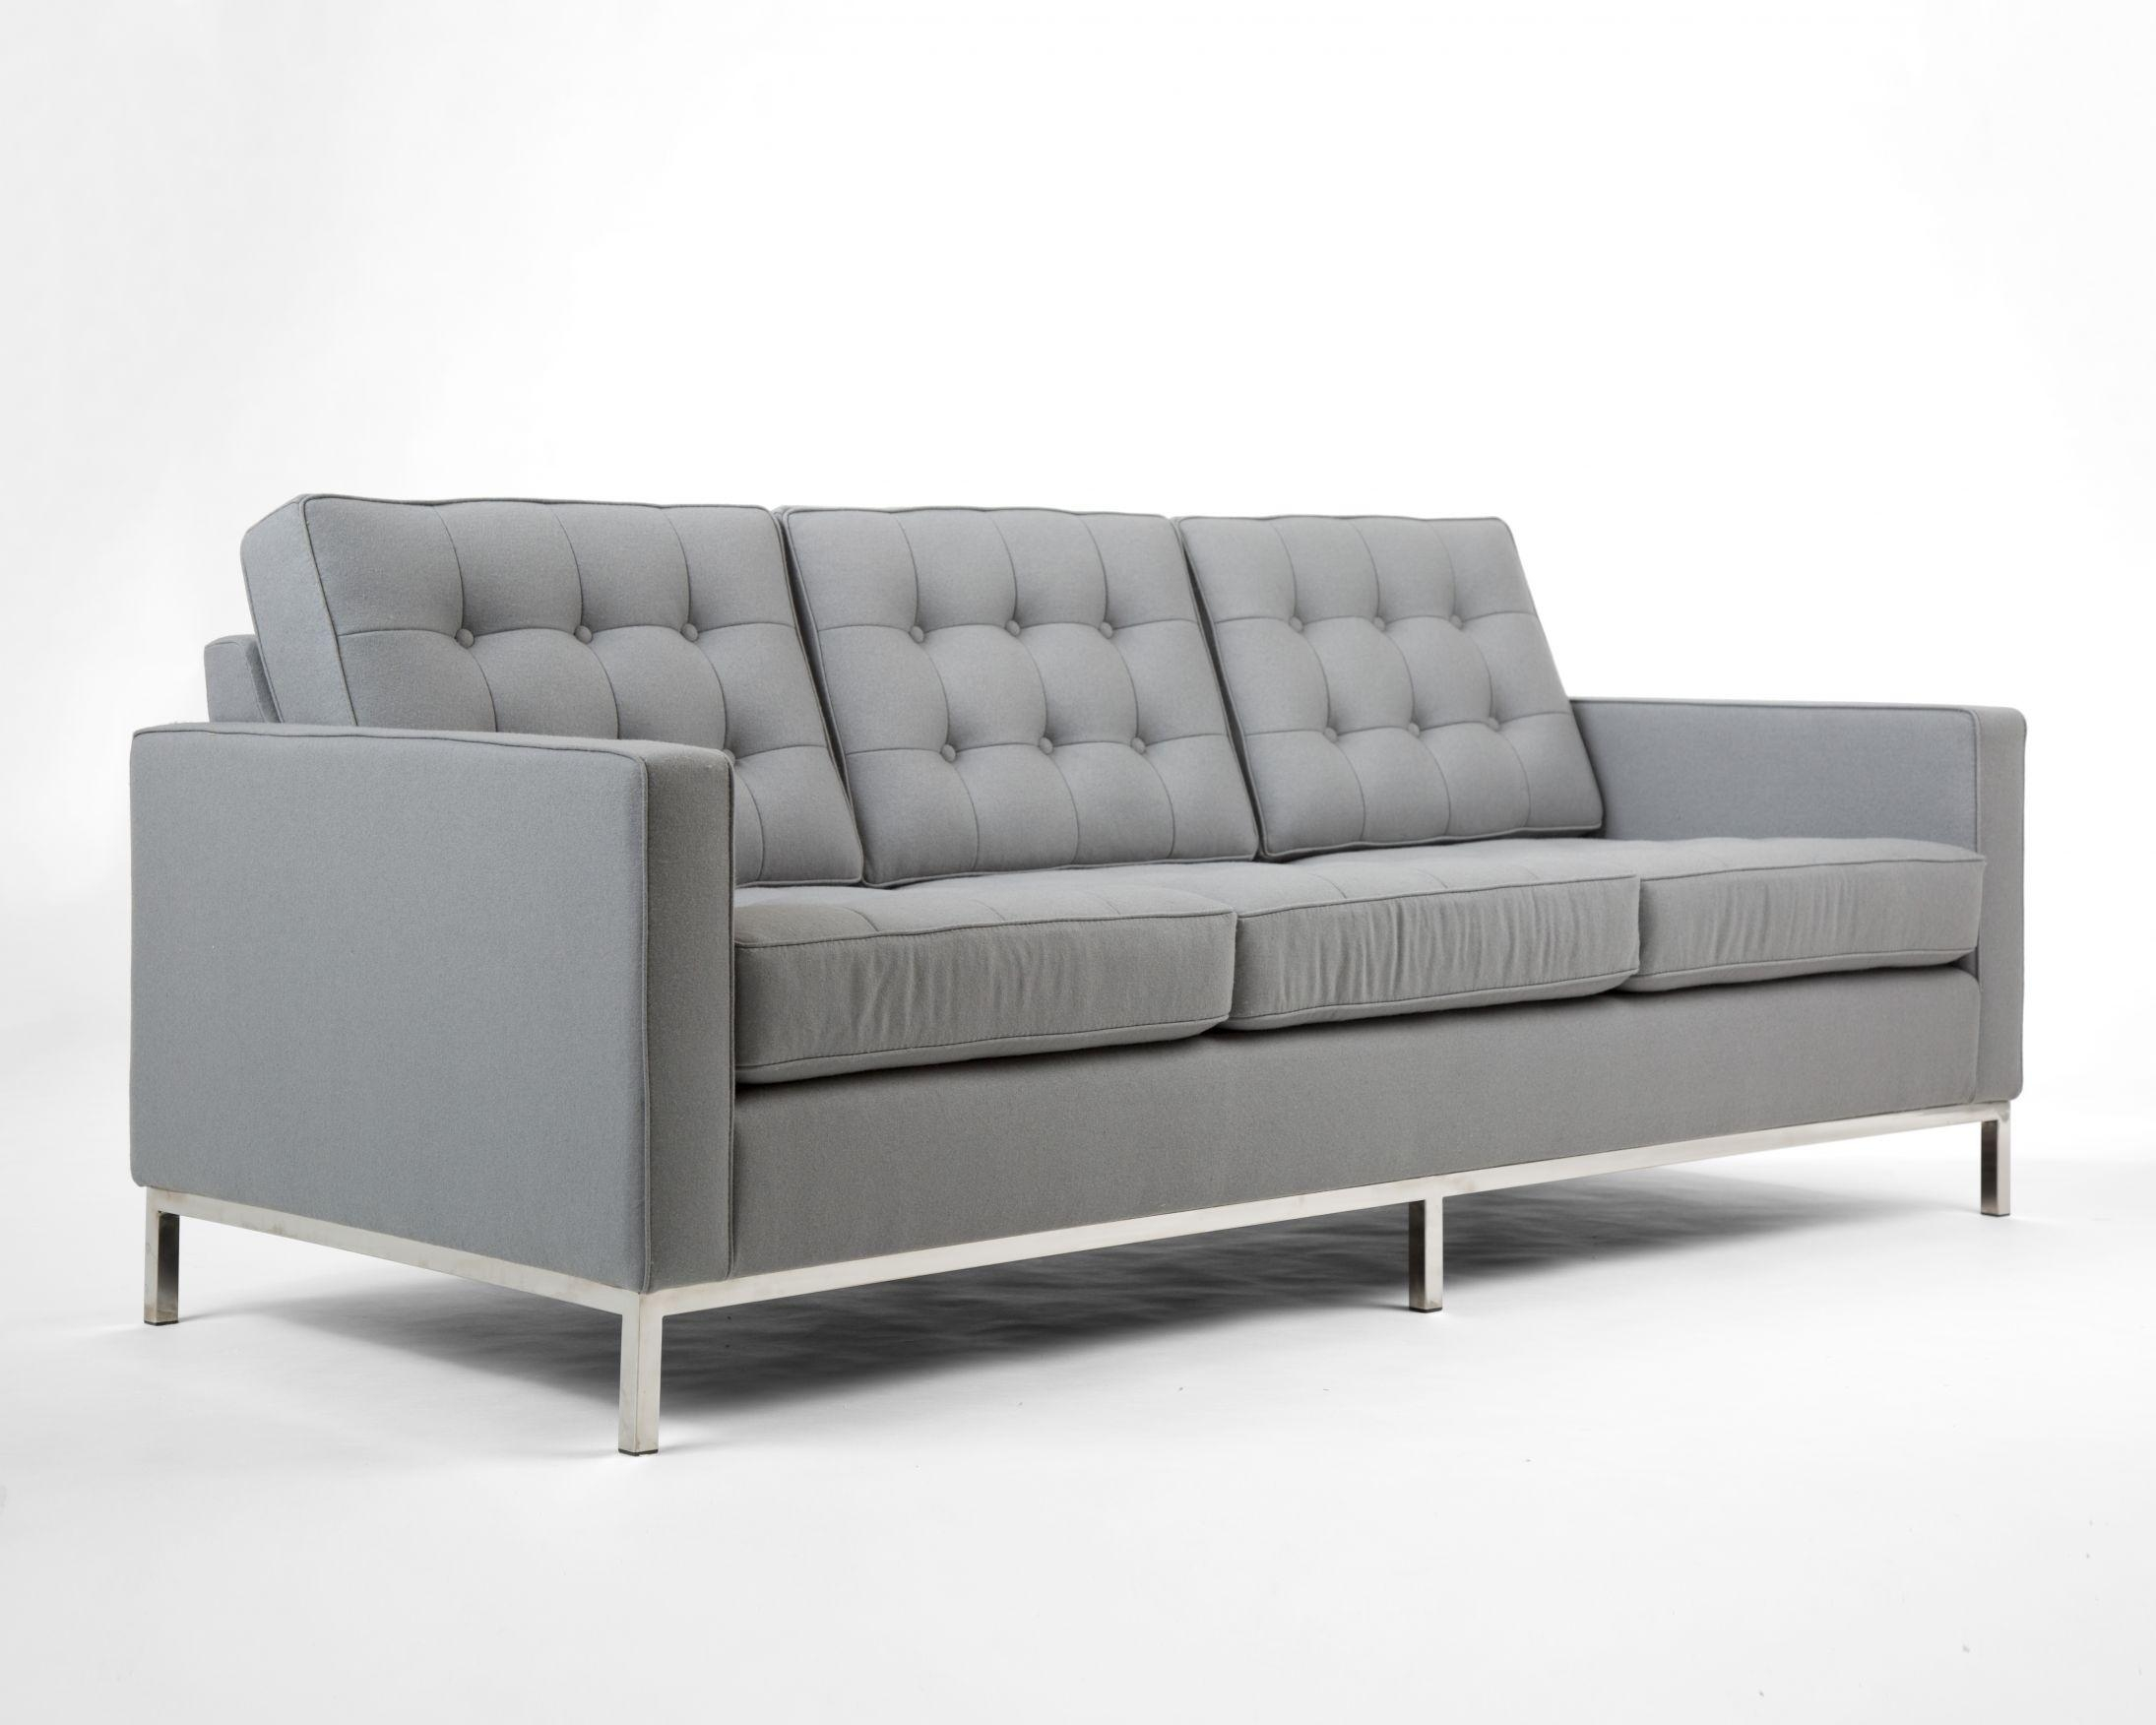 Florence Sofa | Reproduction | Mid Century Modern Throughout Florence Large Sofas (View 12 of 20)